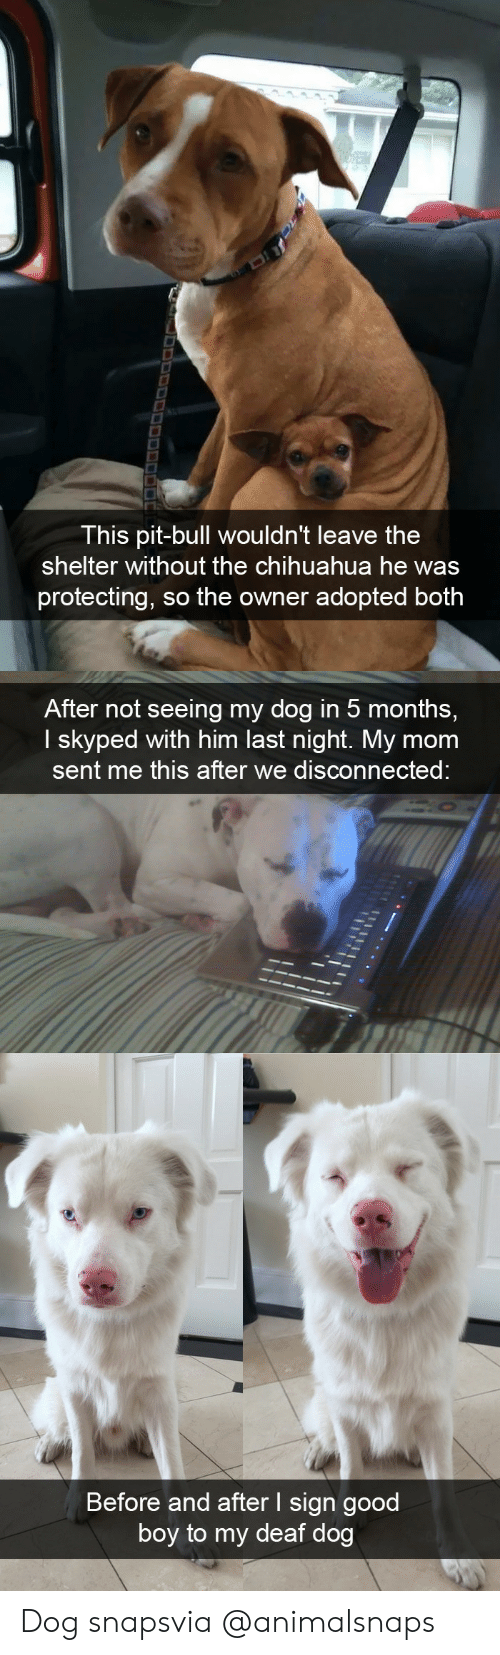 disconnected: This pit-bull wouldn't leave the  shelter without the chihuahua he was  protecting, so the owner adopted both   After not seeing my dog in 5 months,  I skyped with him last night. My mom  sent me this after we disconnected   Before and after I sign good  boy to my deaf dog Dog snapsvia @animalsnaps